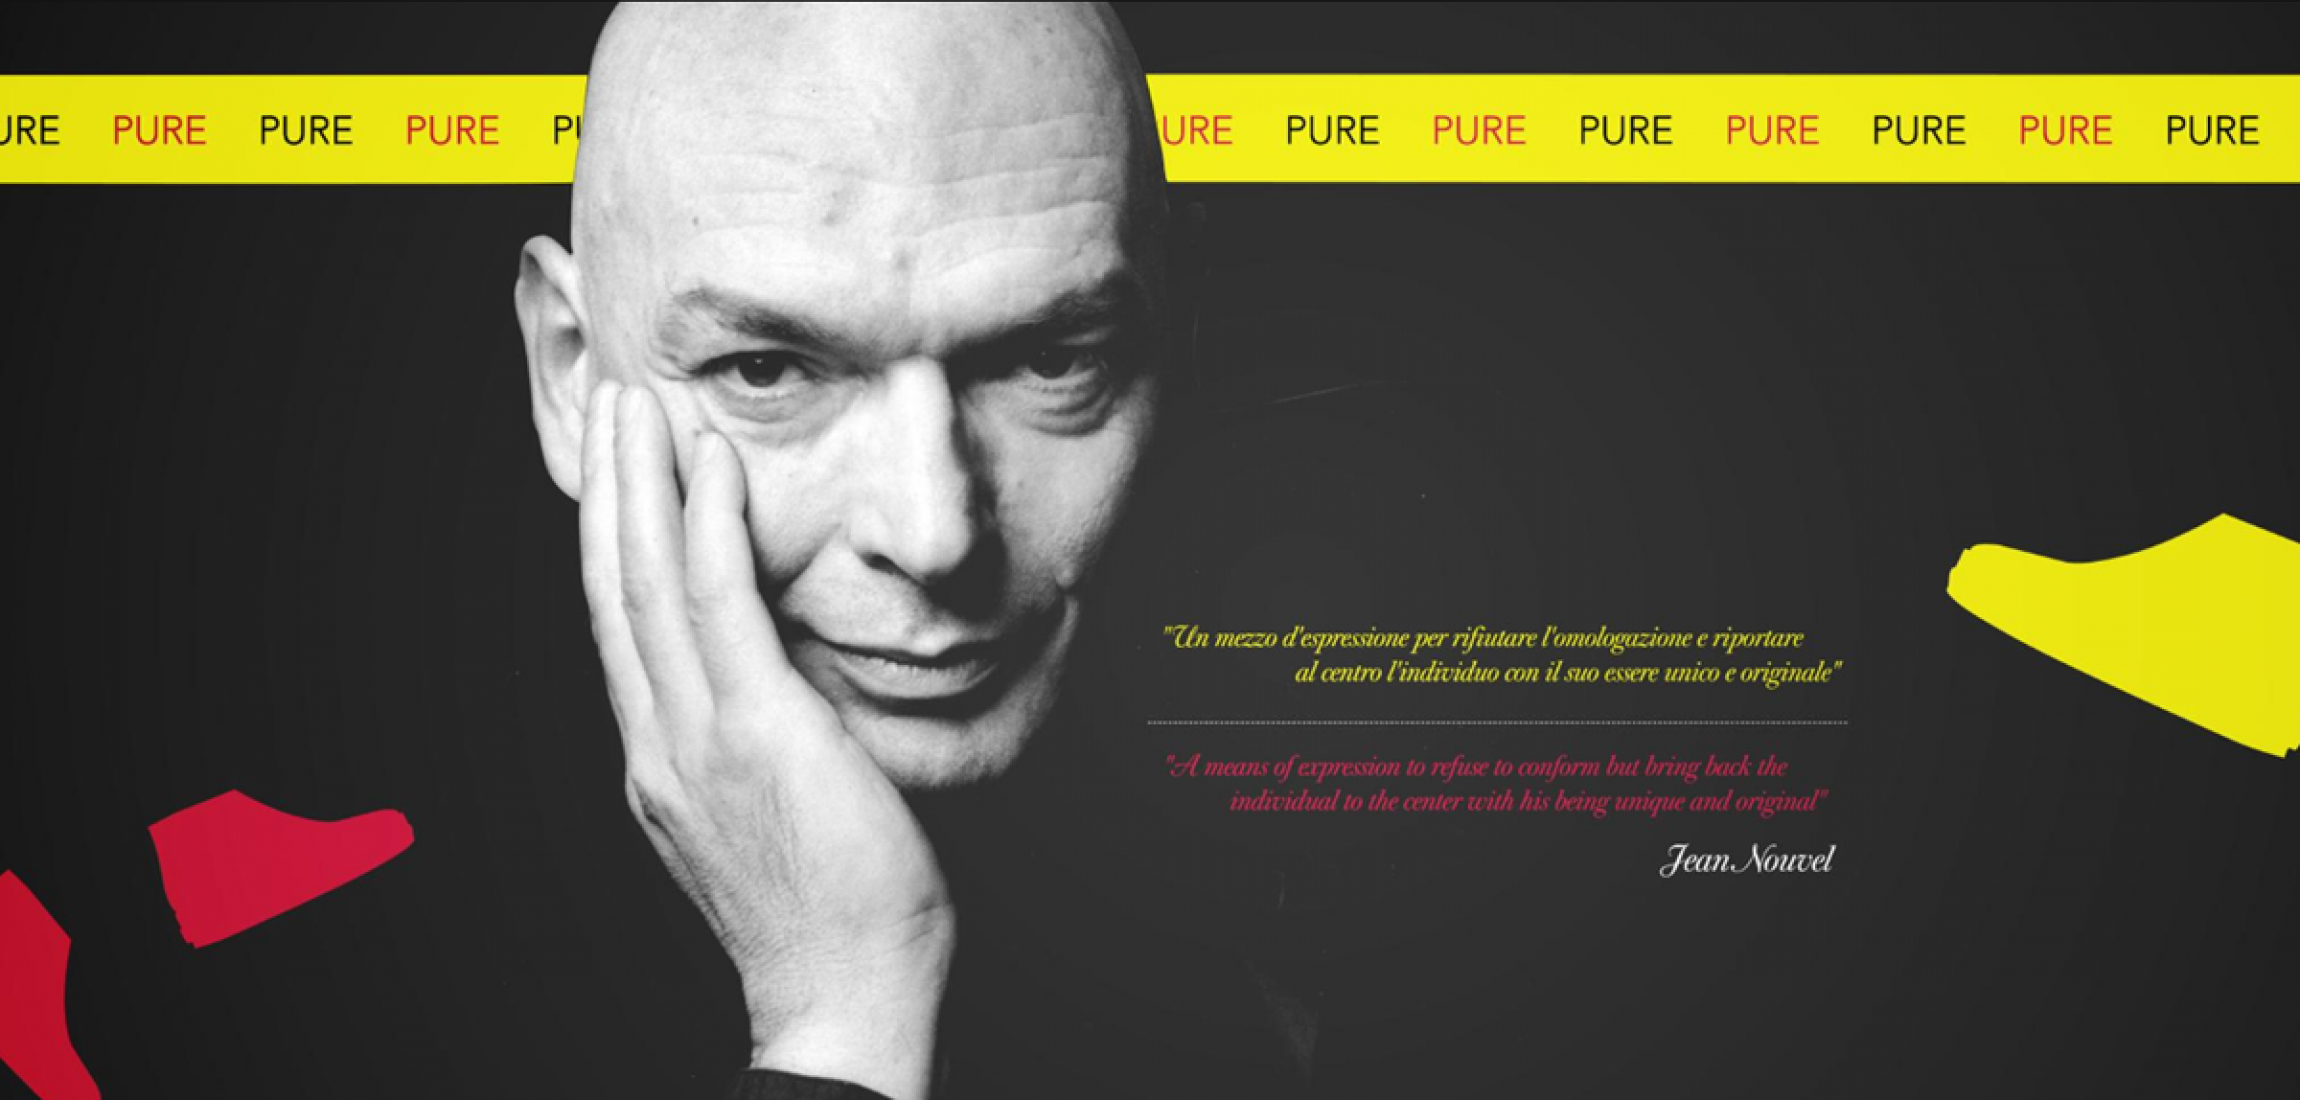 Pure by Jean Nouvel for Ruco Line. Image courtesy of Ruco Line.